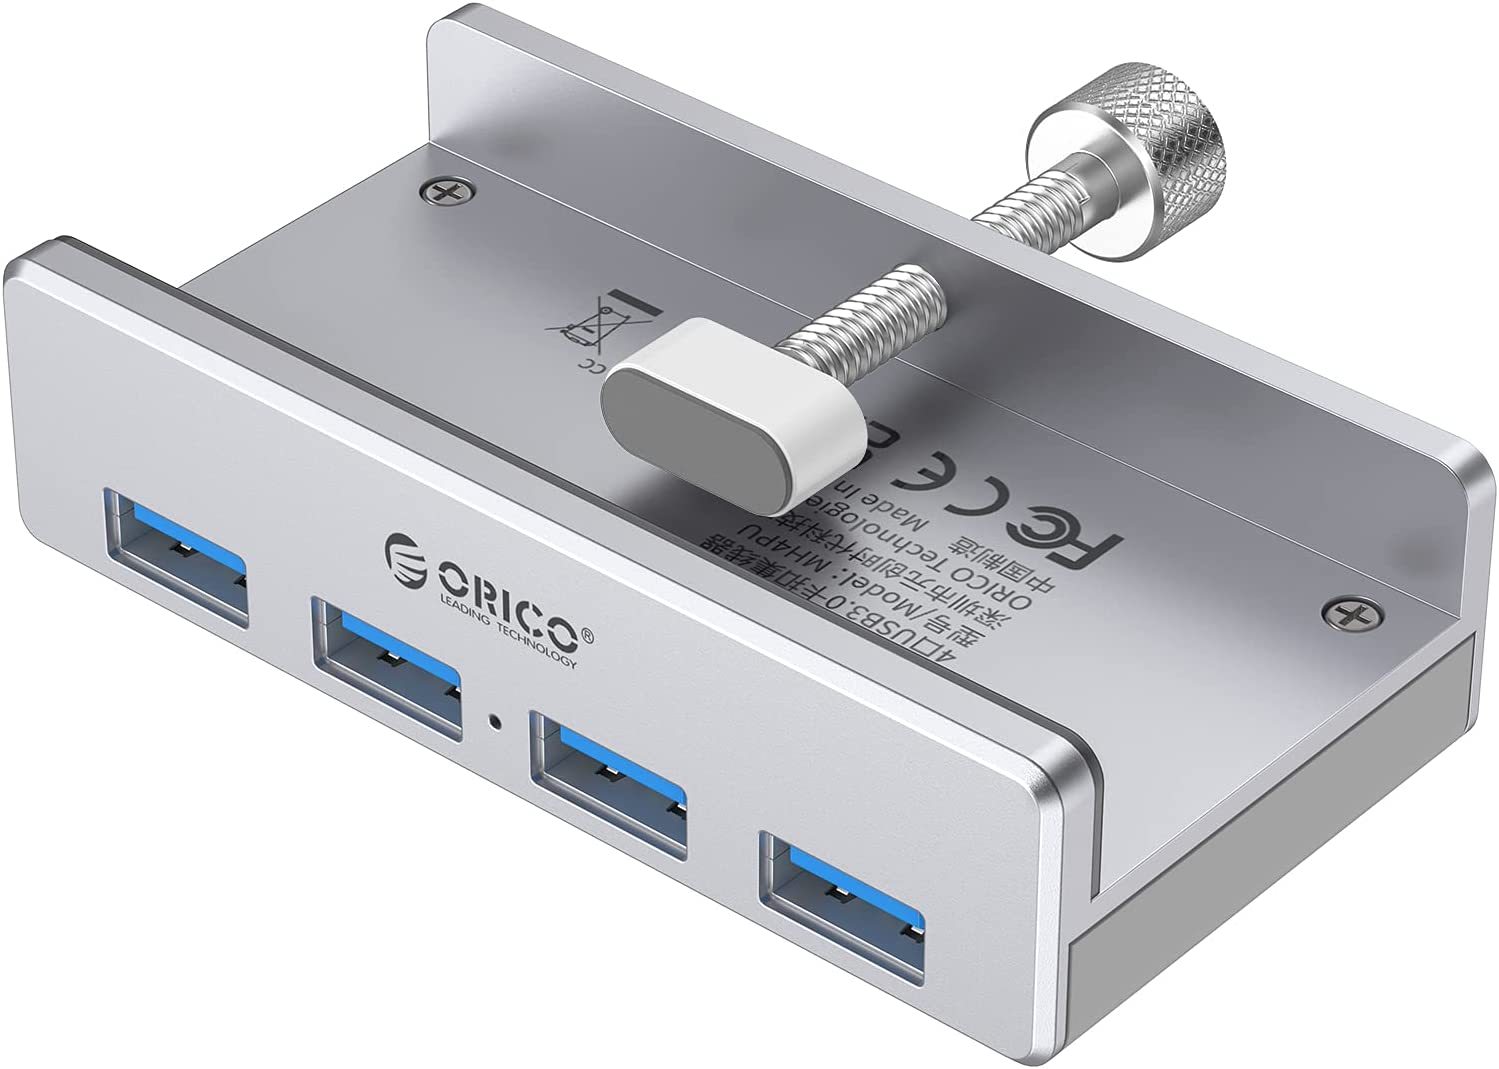 ORICO USB 3.0 Hub Clamp Adapter, Aluminum 4-Port USB Splitter with Extra Power Supply Port and 4.92 FT USB Data Cable, Ultra-Portable USB Expander for MacBook Air/Laptop/PC